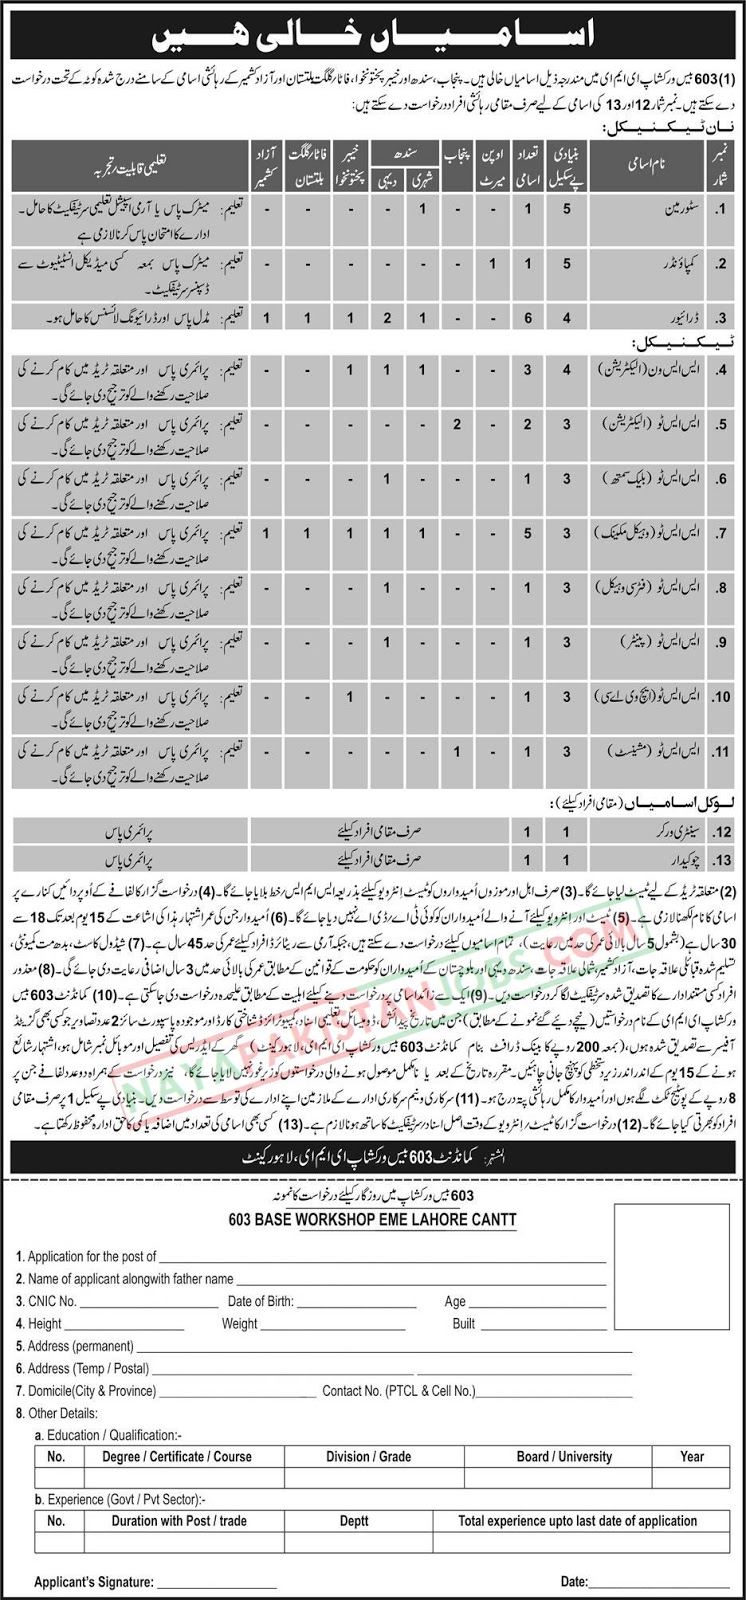 Latest Vacancies Announced in Pakistan Army Lahore at 603 Base Workshop EME 12 November 2018 - Naya Pakistan